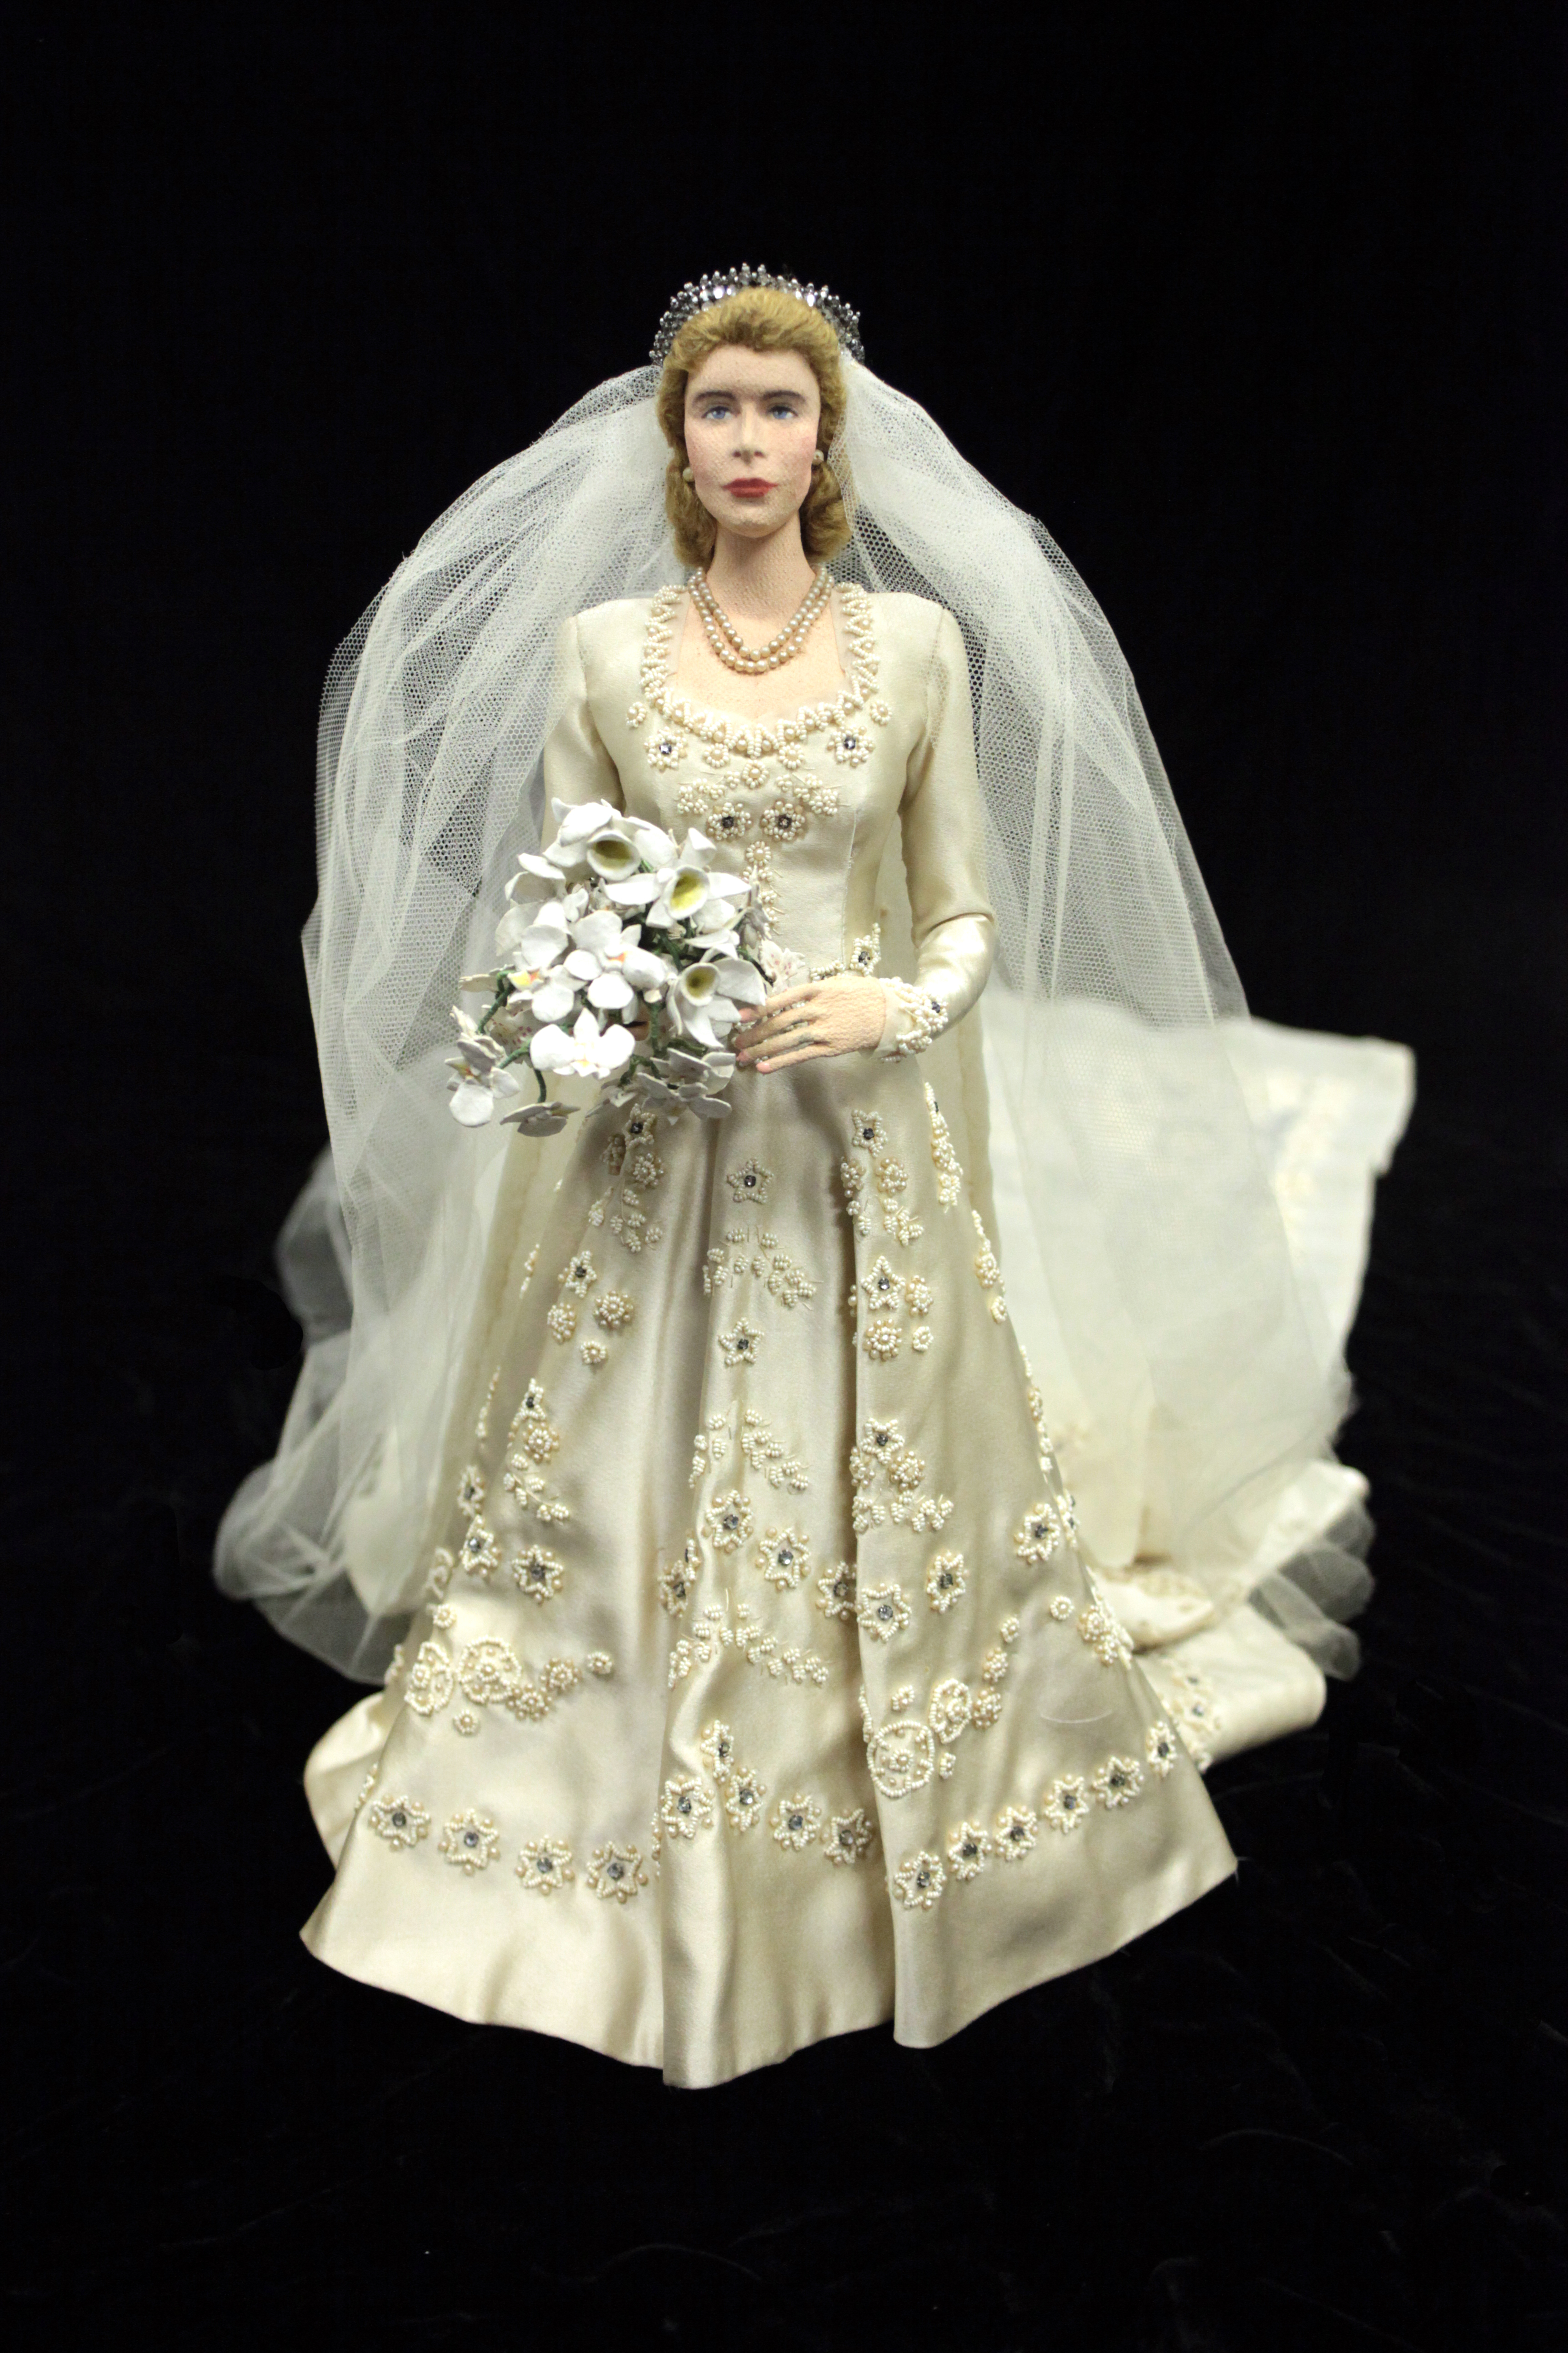 Fit for a Queen or a Doll - Global Toy News